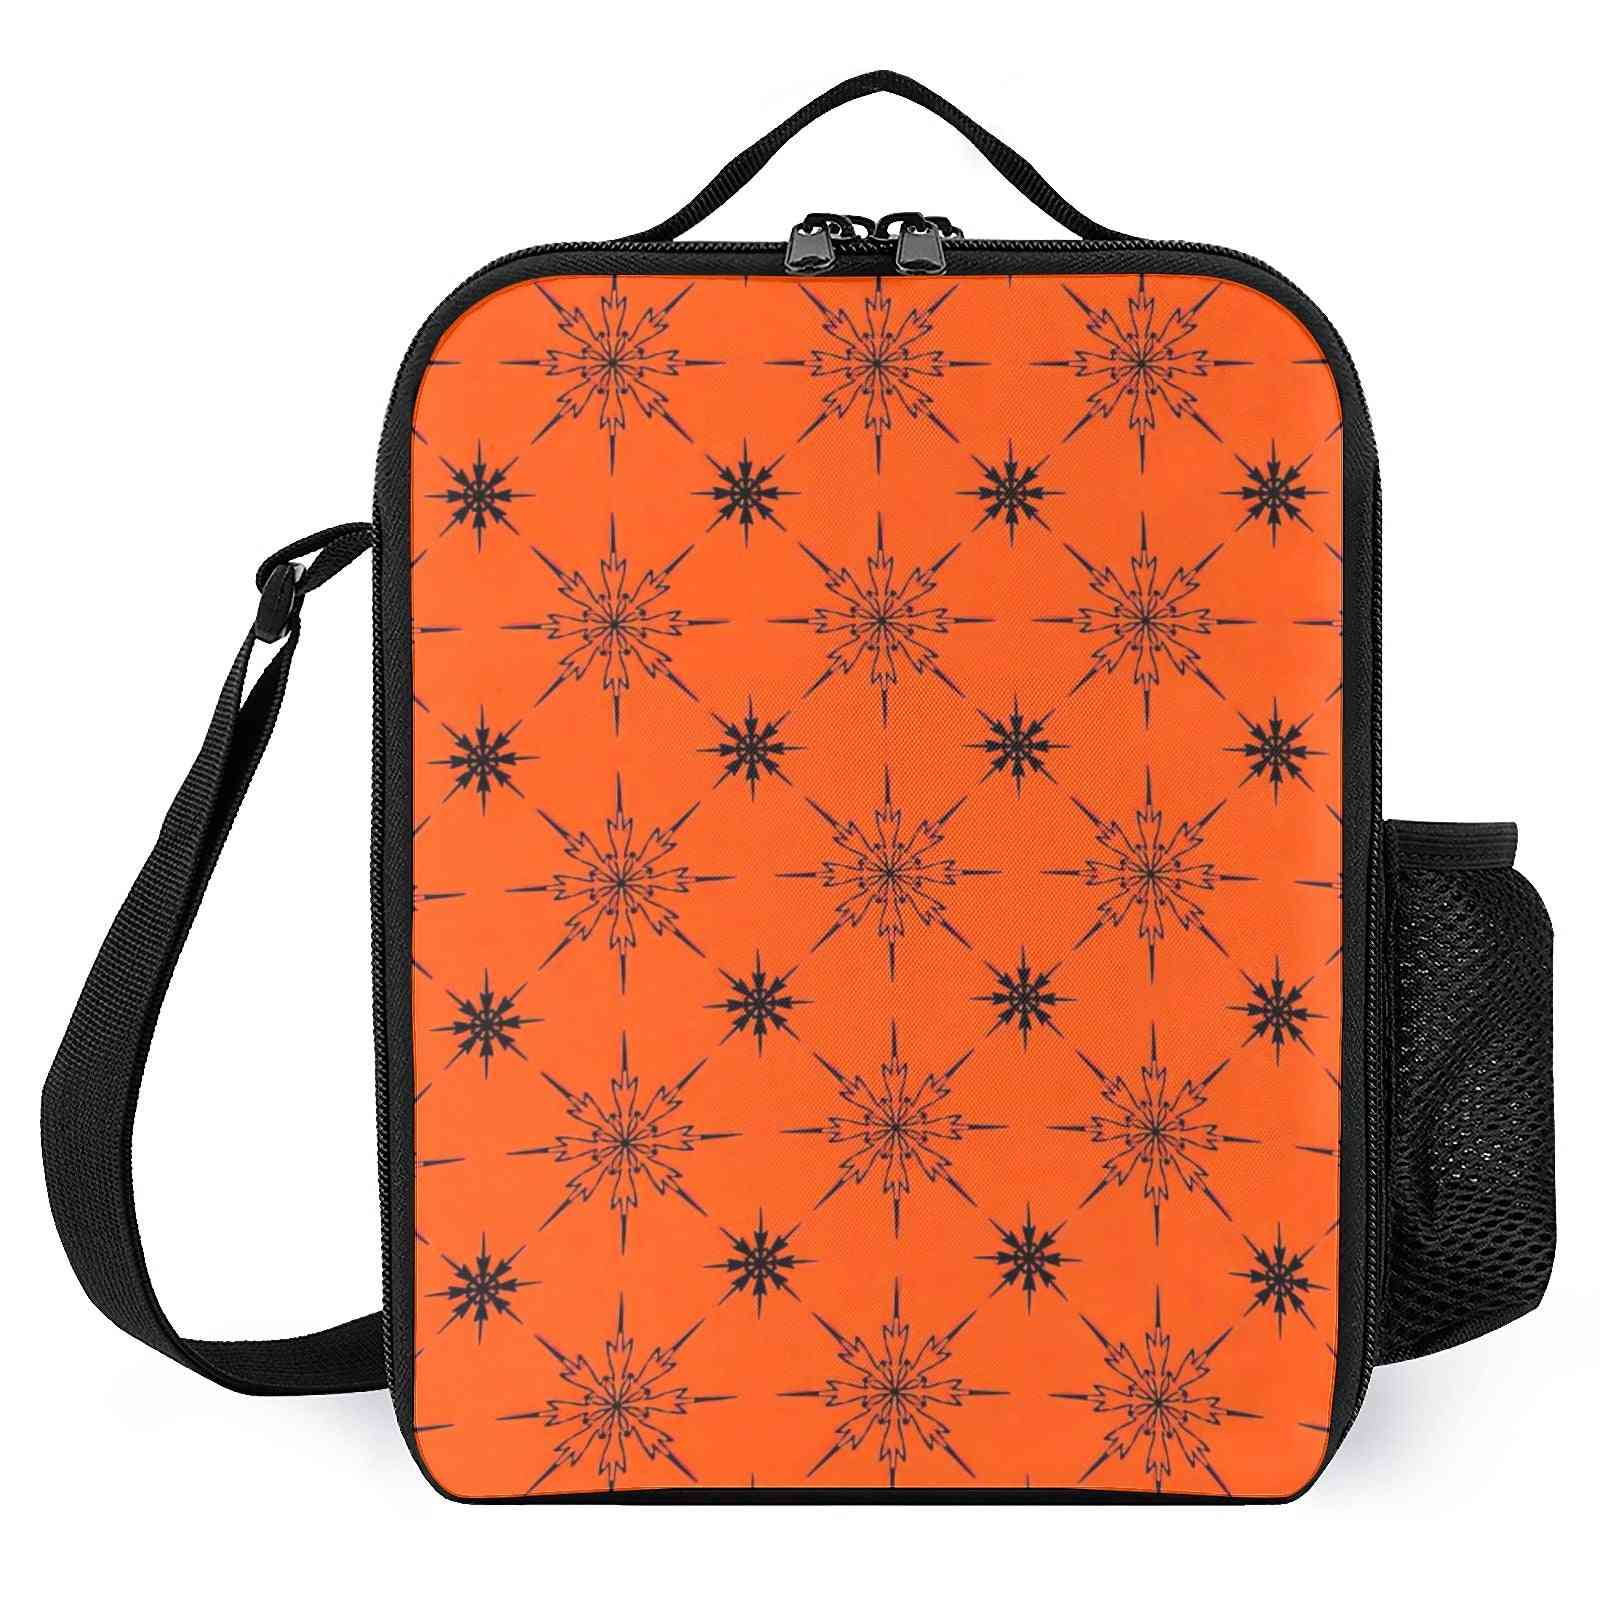 Snowflake Pattern Printed Insulated Lunch Box For School